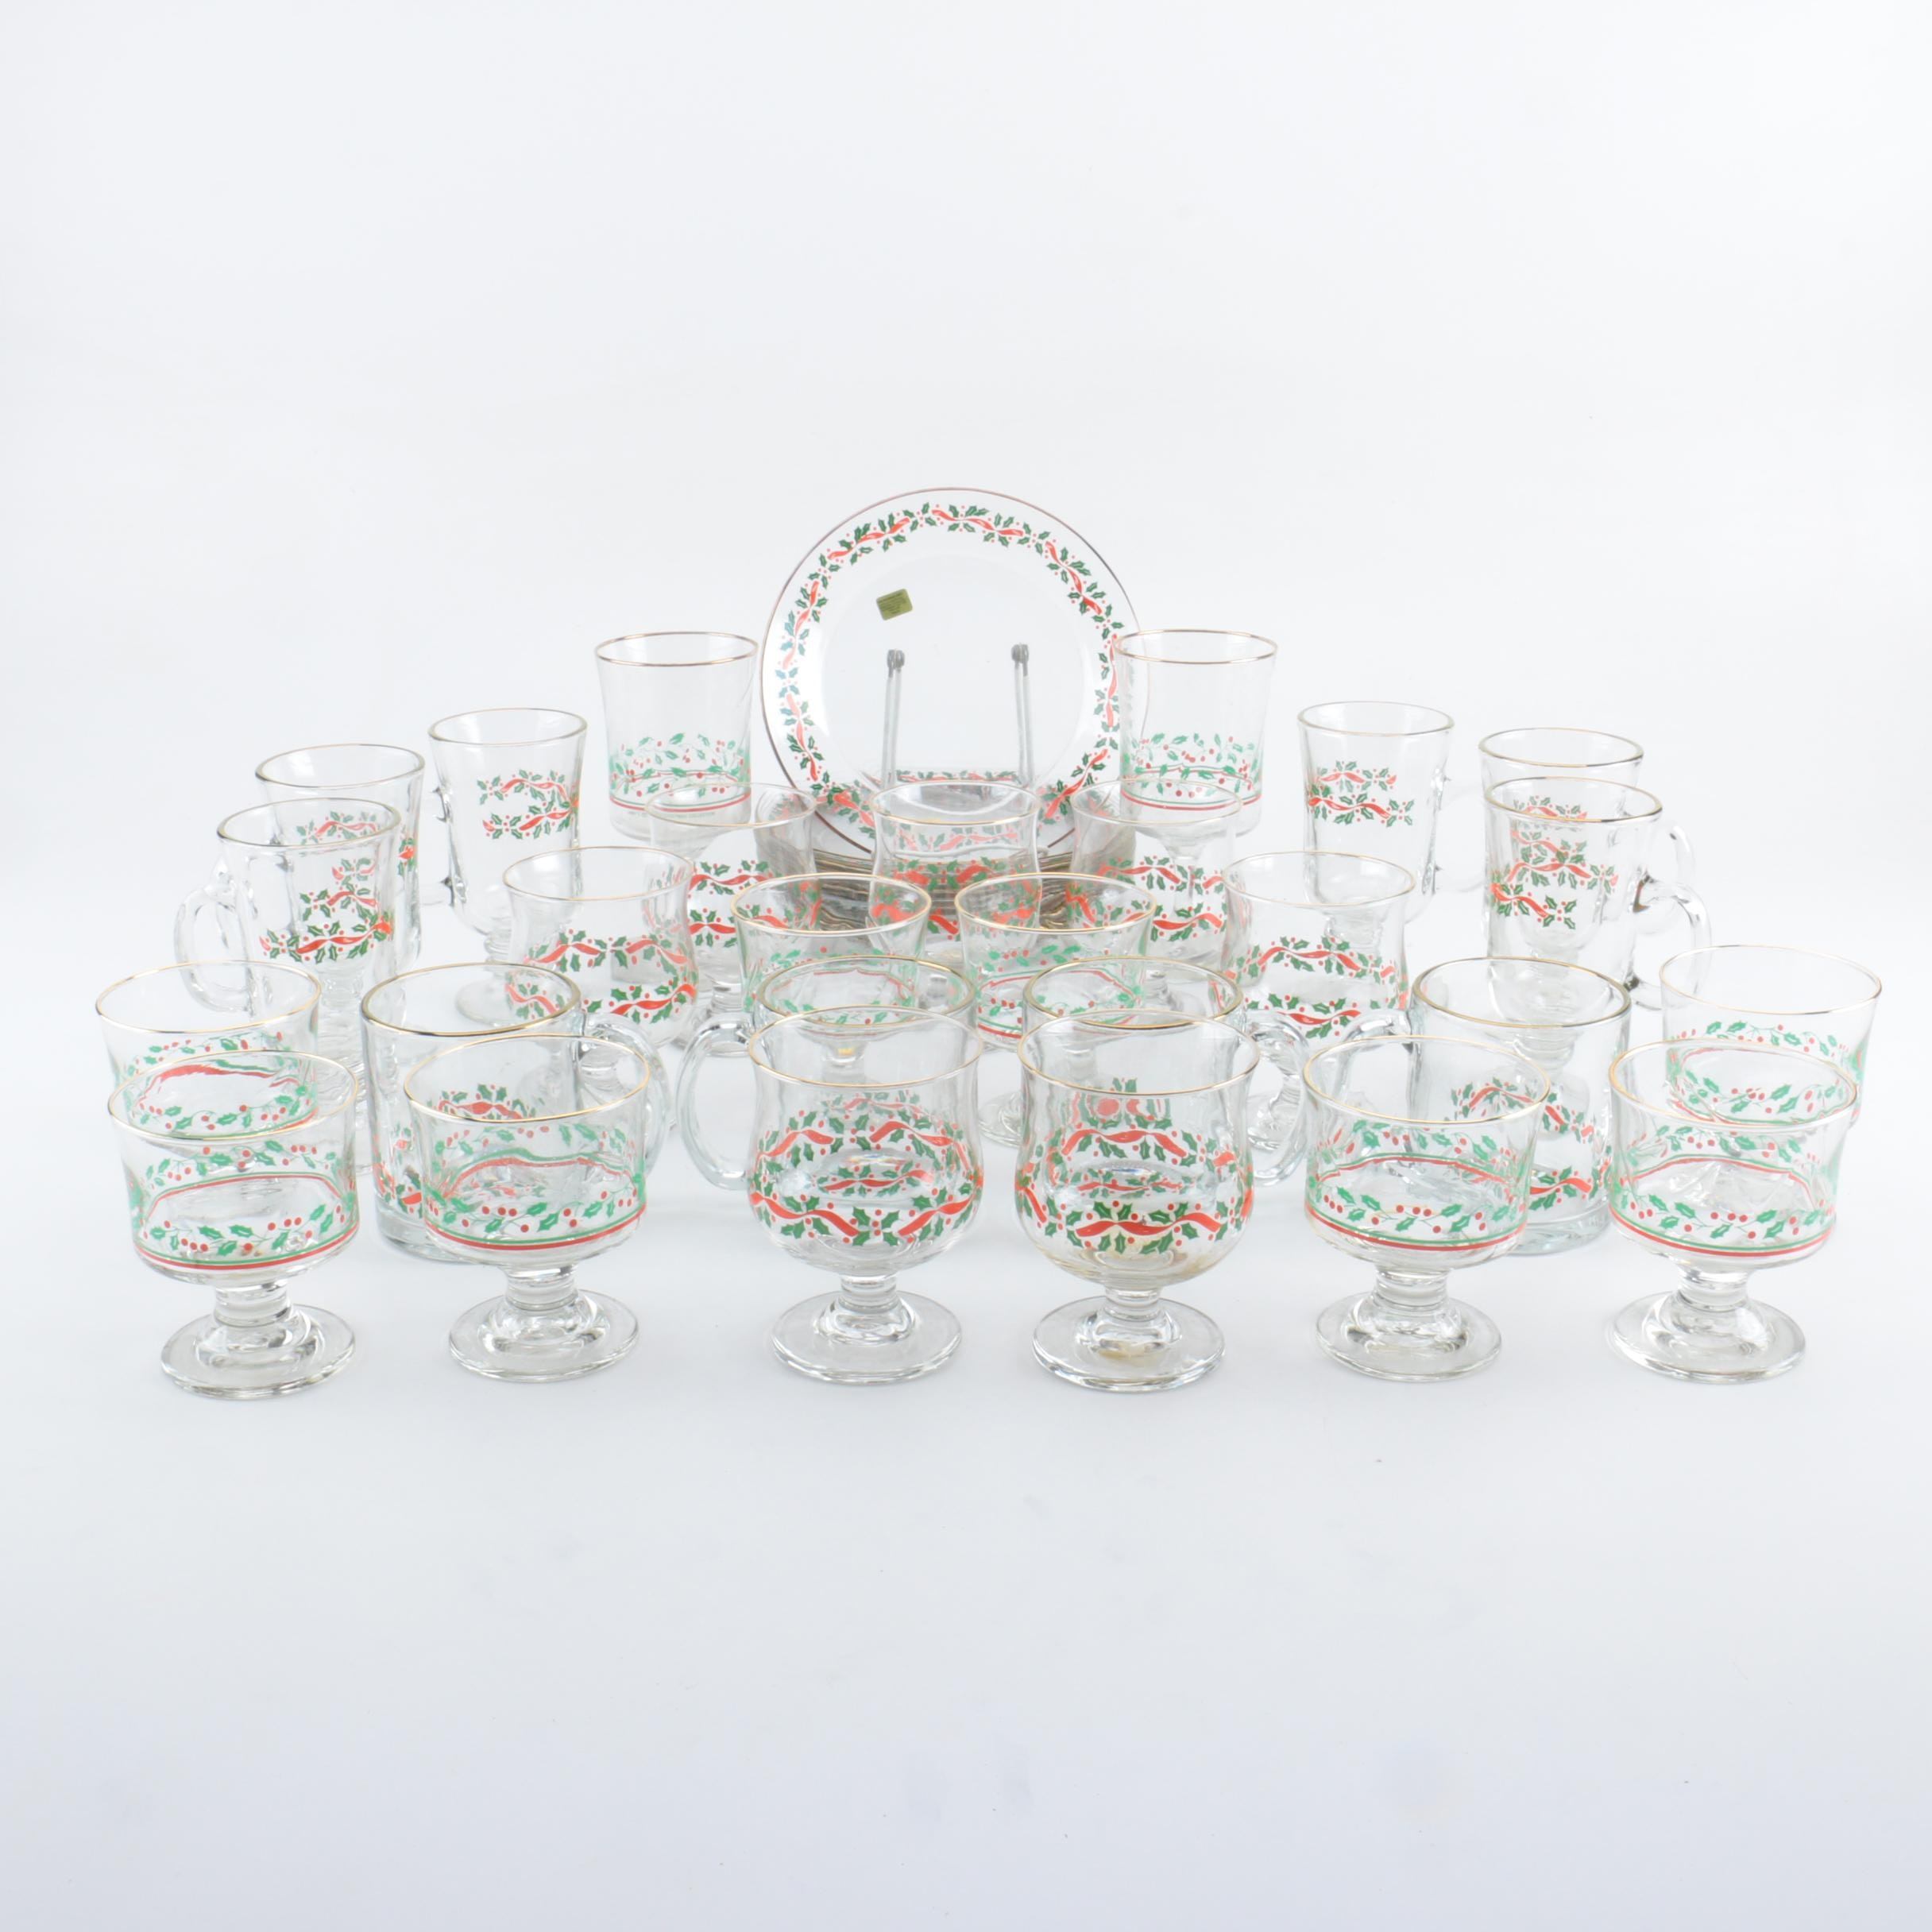 Arby's 1987 Christmas Collection Glass Tableware